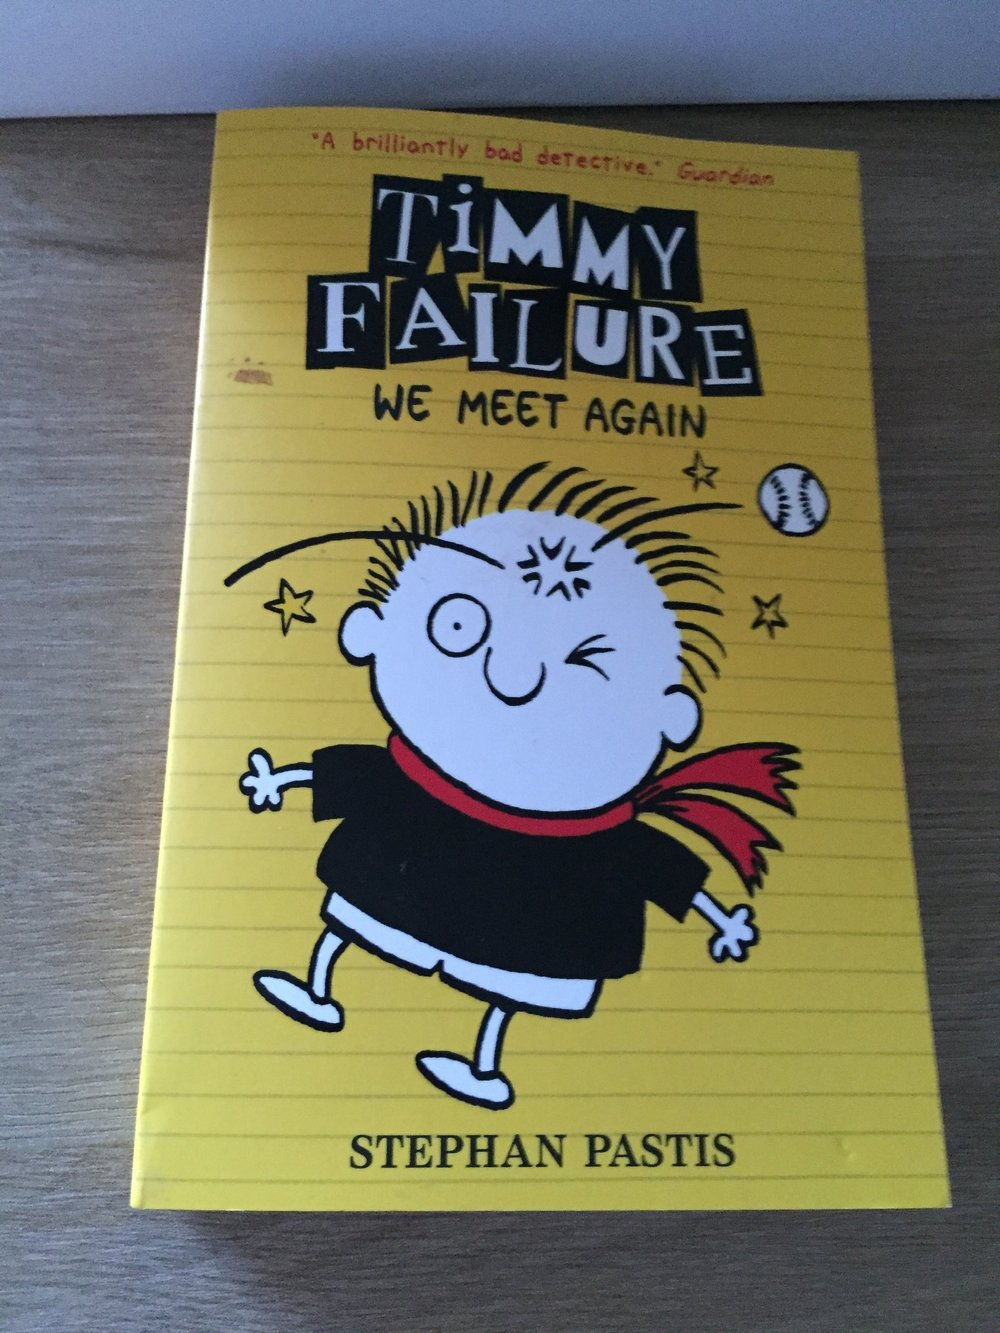 Timmy Failure is a boy detective who lives with his mum. He was expelled from school but is allowed to return on a probationary basis. At school, one of the students hires him to find the Miracle Report. Timmy's quest takes him on a journey and through the story you follow him on his crazy adventure.